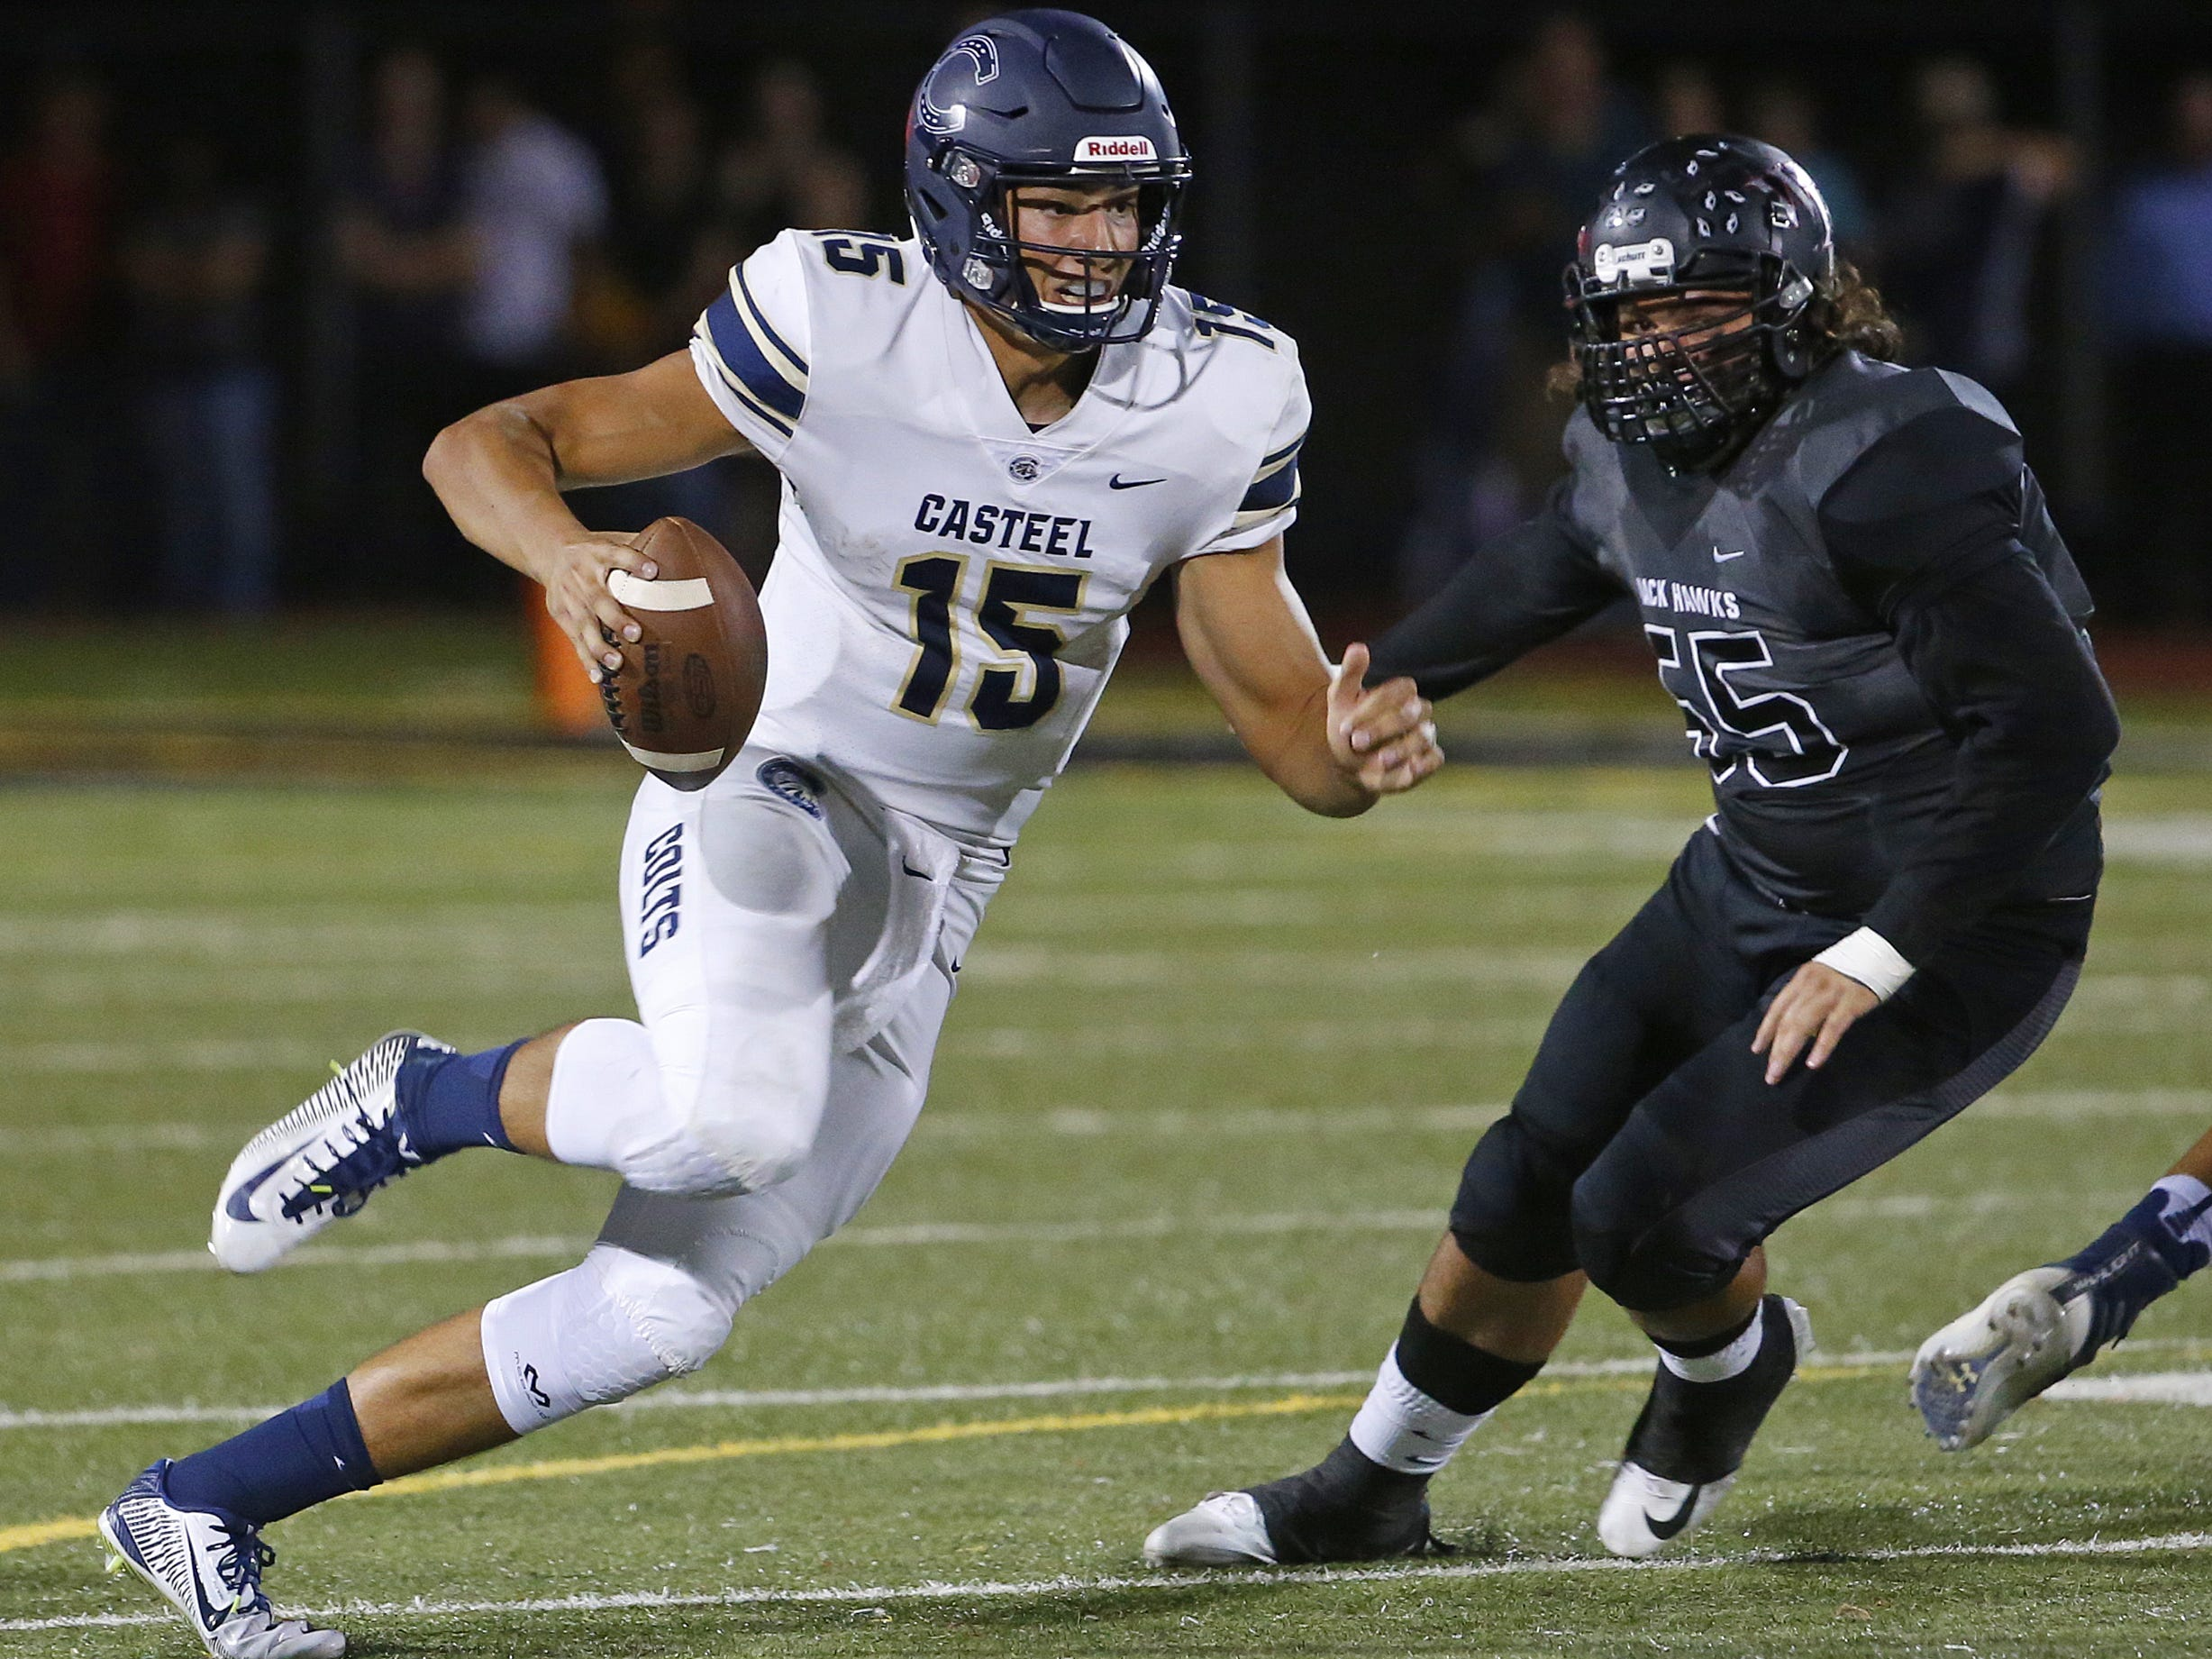 Casteel's Gunner Cruz (15) scrambles away from Williams Fields Nathaniel Rebollosa (55) at Williams Field High School in Gilbert, Ariz. on Sept. 21, 2018.  #azhsfb